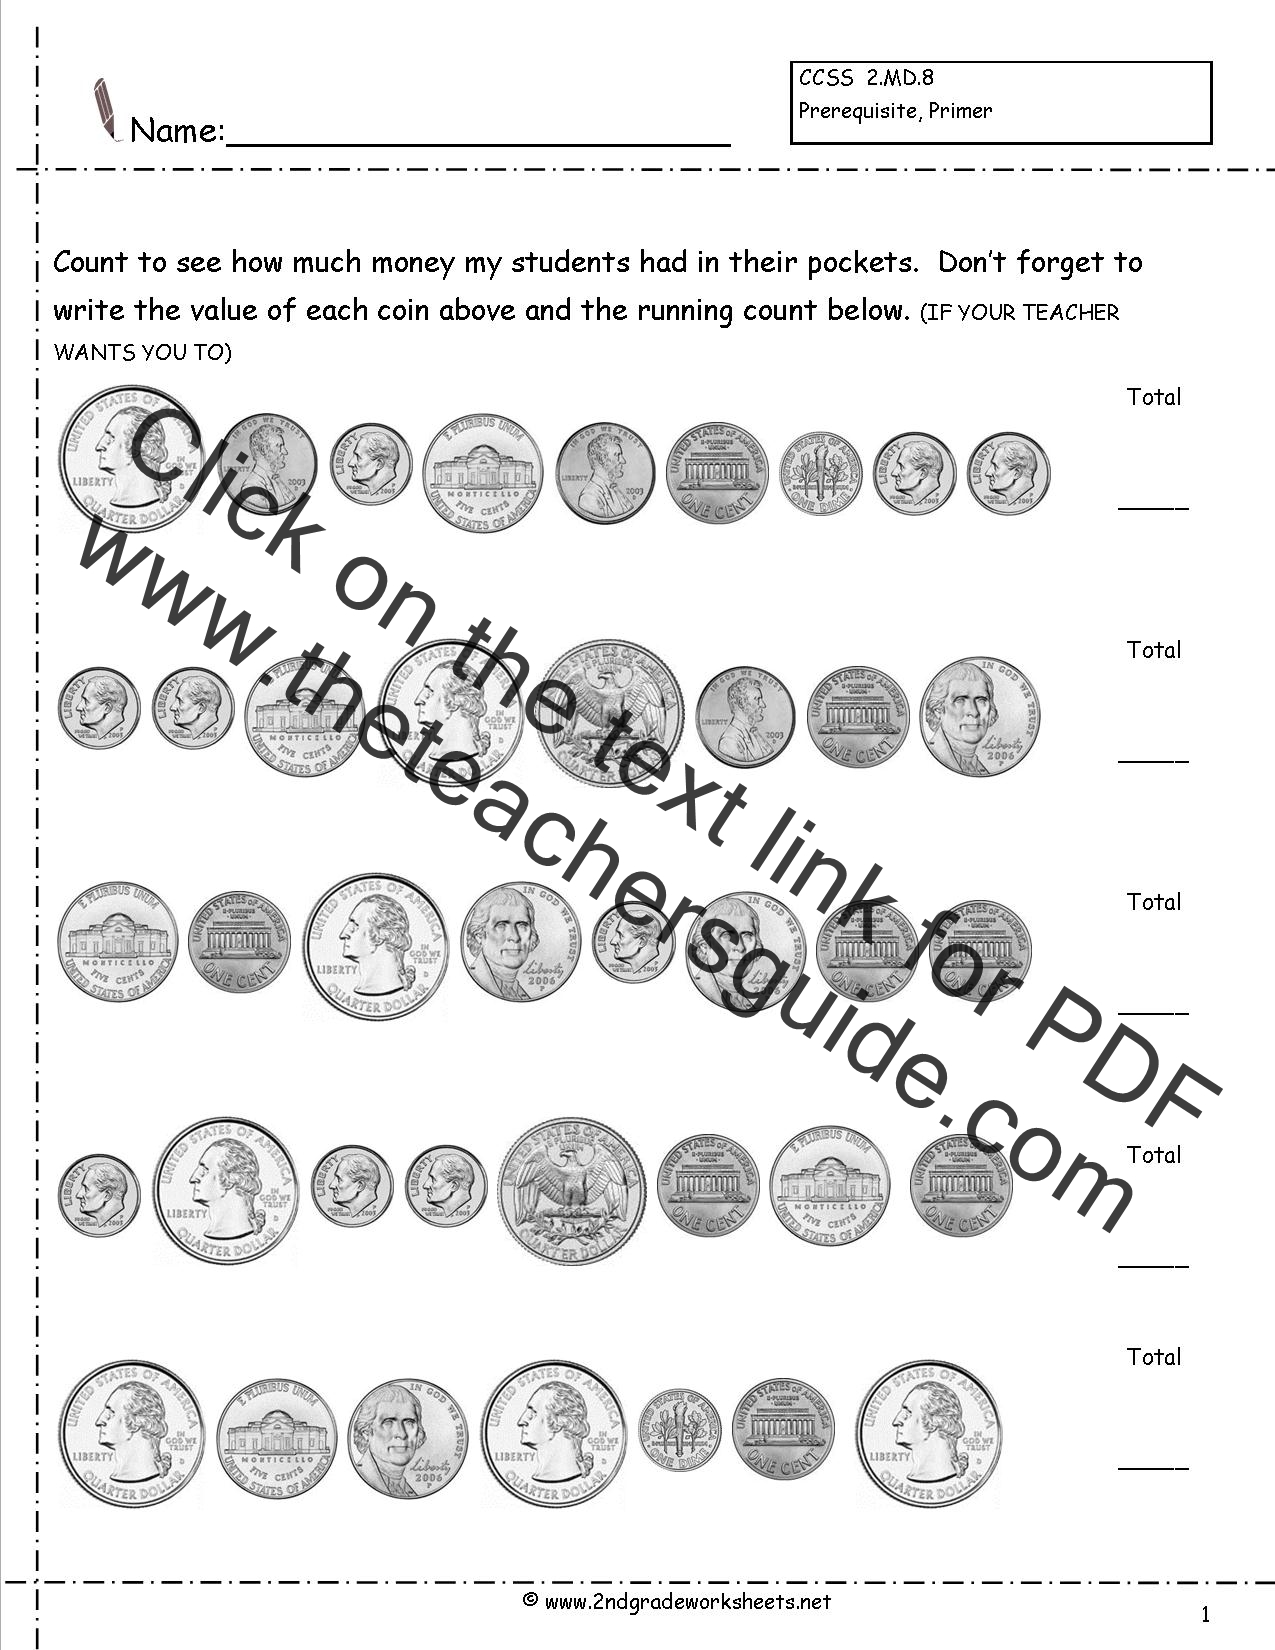 Worksheets Counting Nickels Worksheet ccss 2 md 8 worksheets counting coins money worksheets